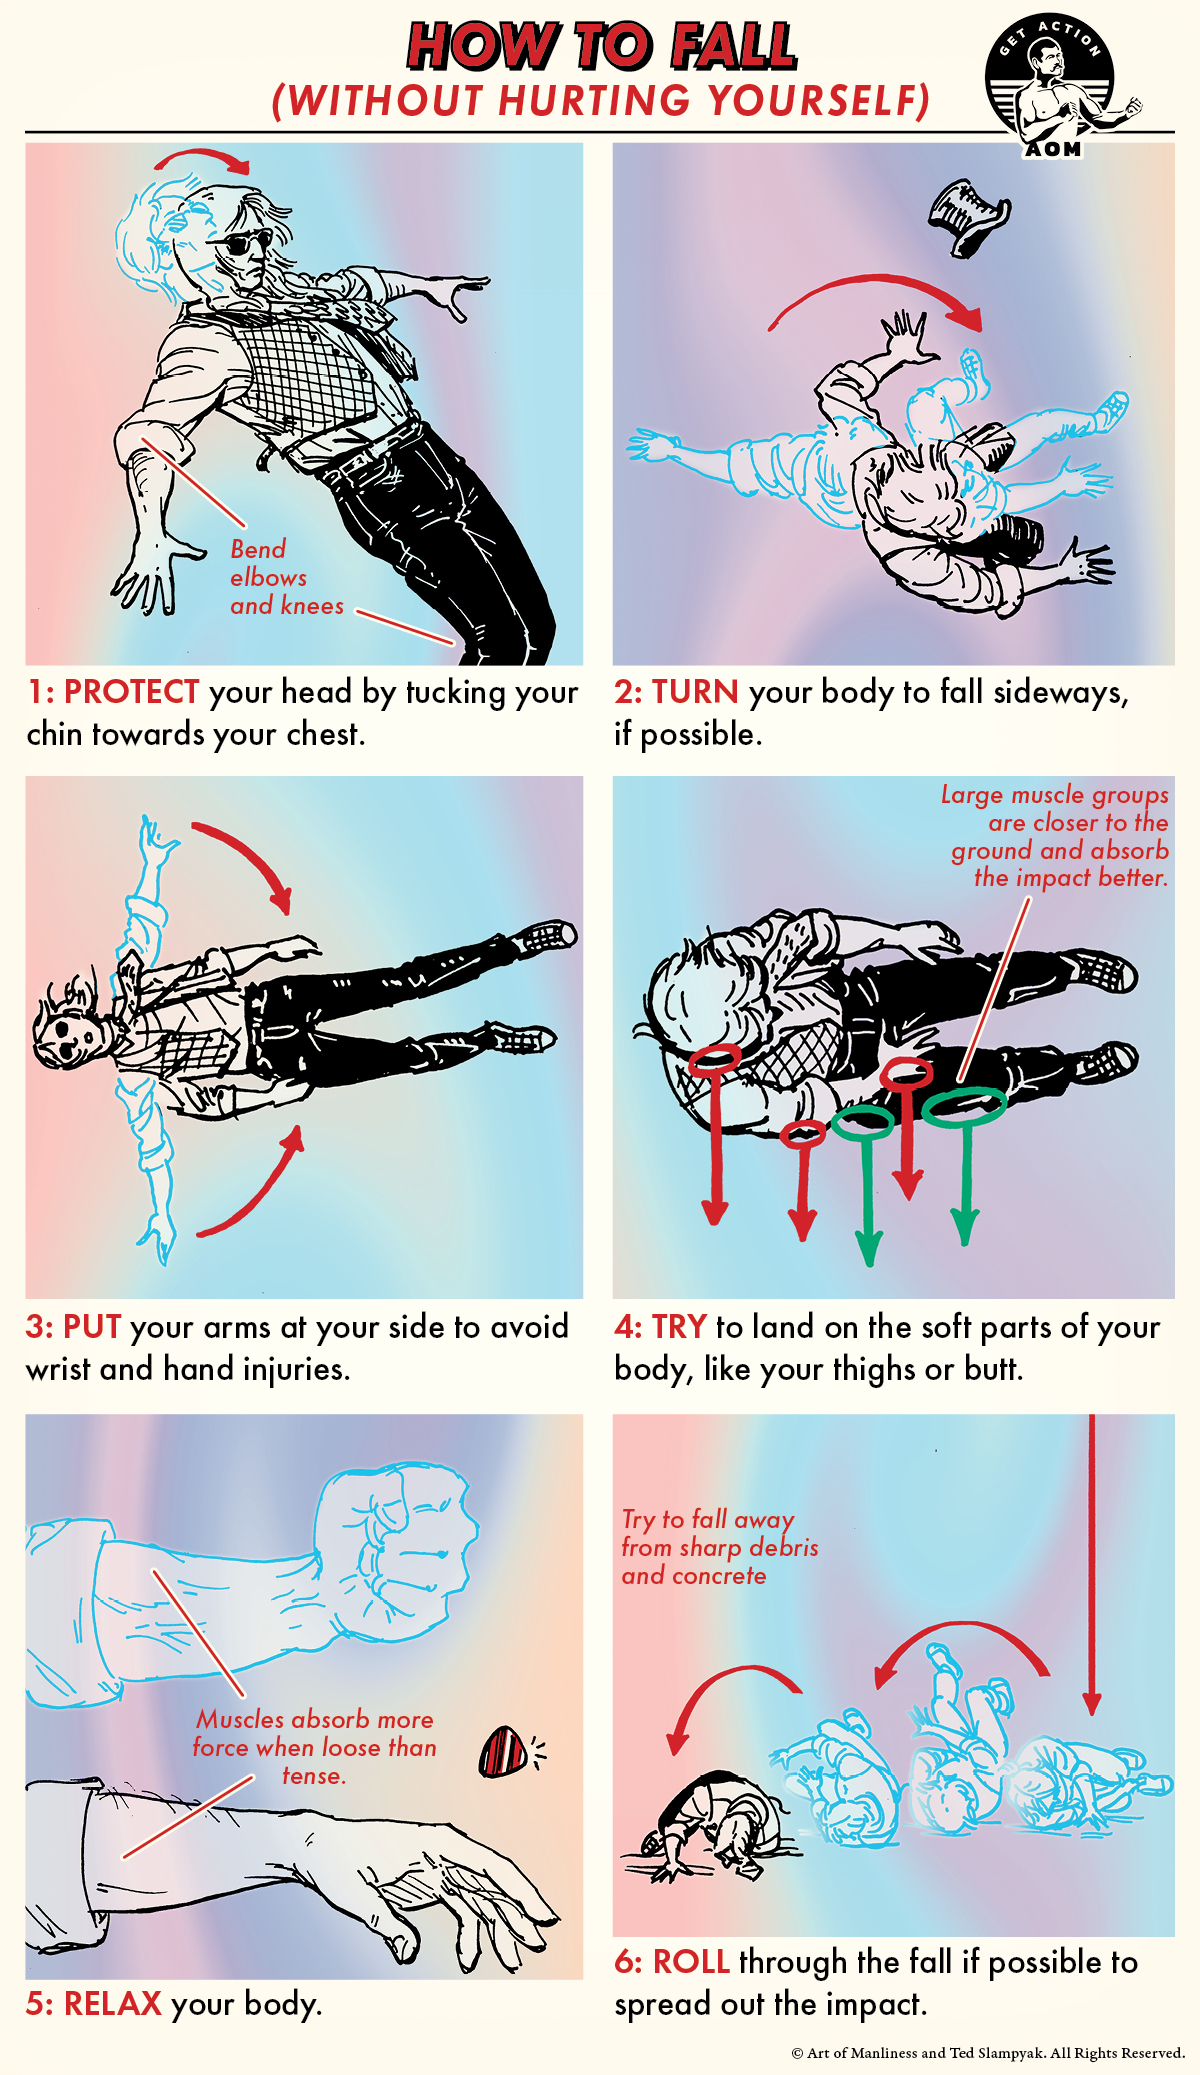 How To Fall Without Hurting Yourself The Art Of Manliness